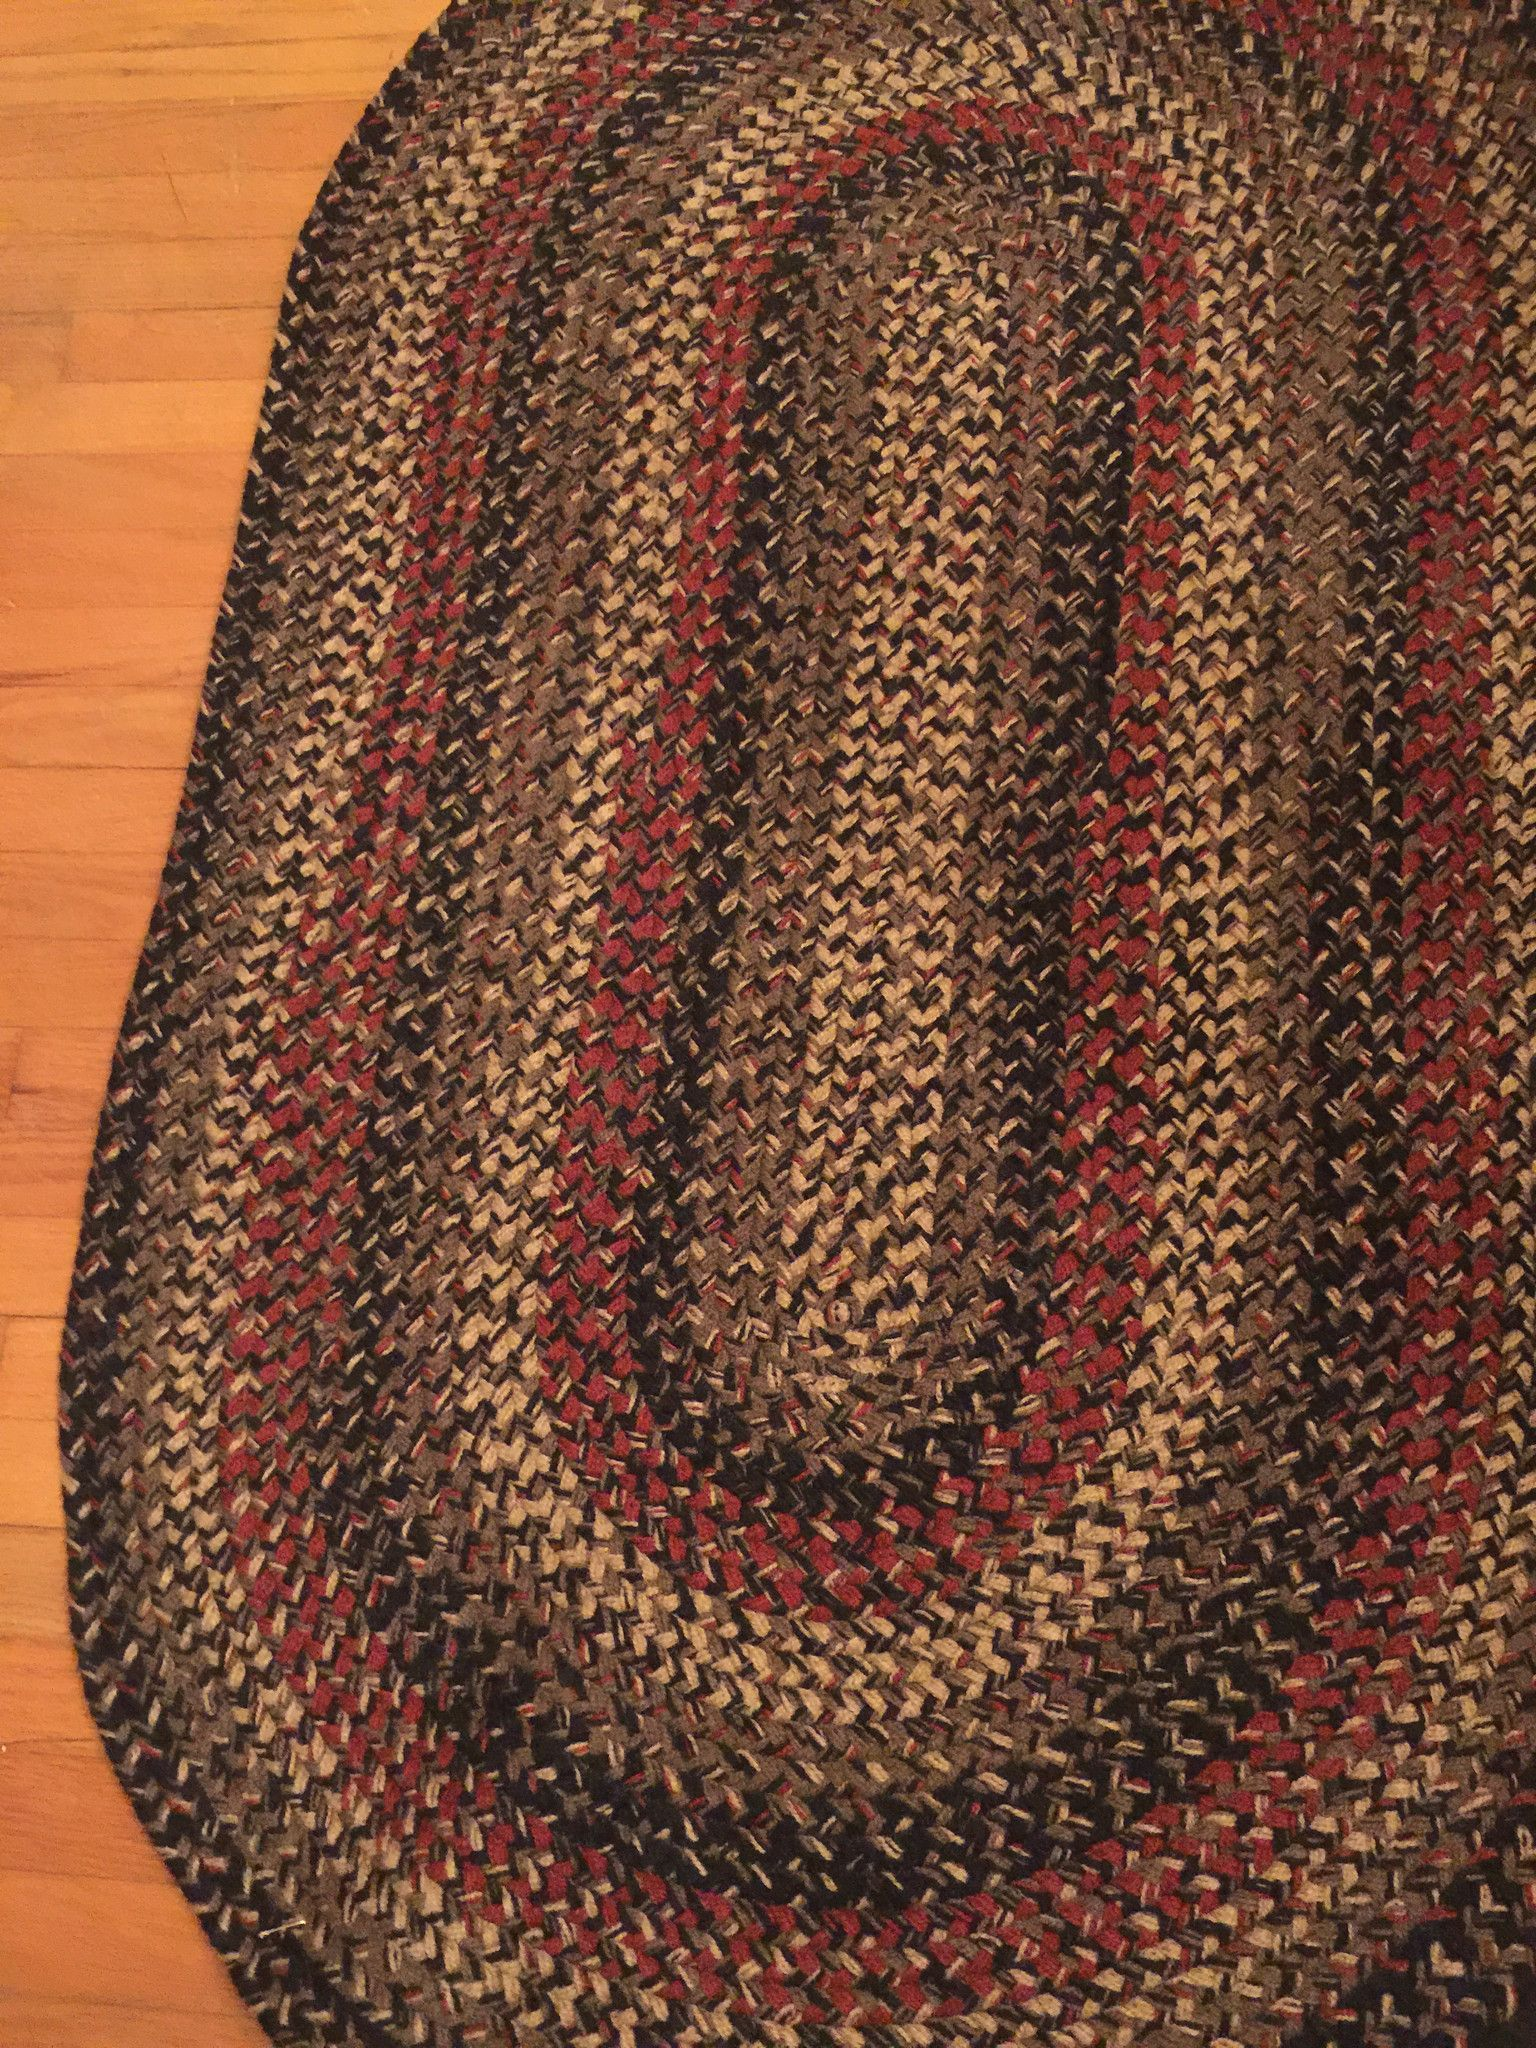 Made In North Carolina By The Colonial Braided Rug Co Braidedrugs Braided Rugs Braided Wool Rug Colorful Rugs